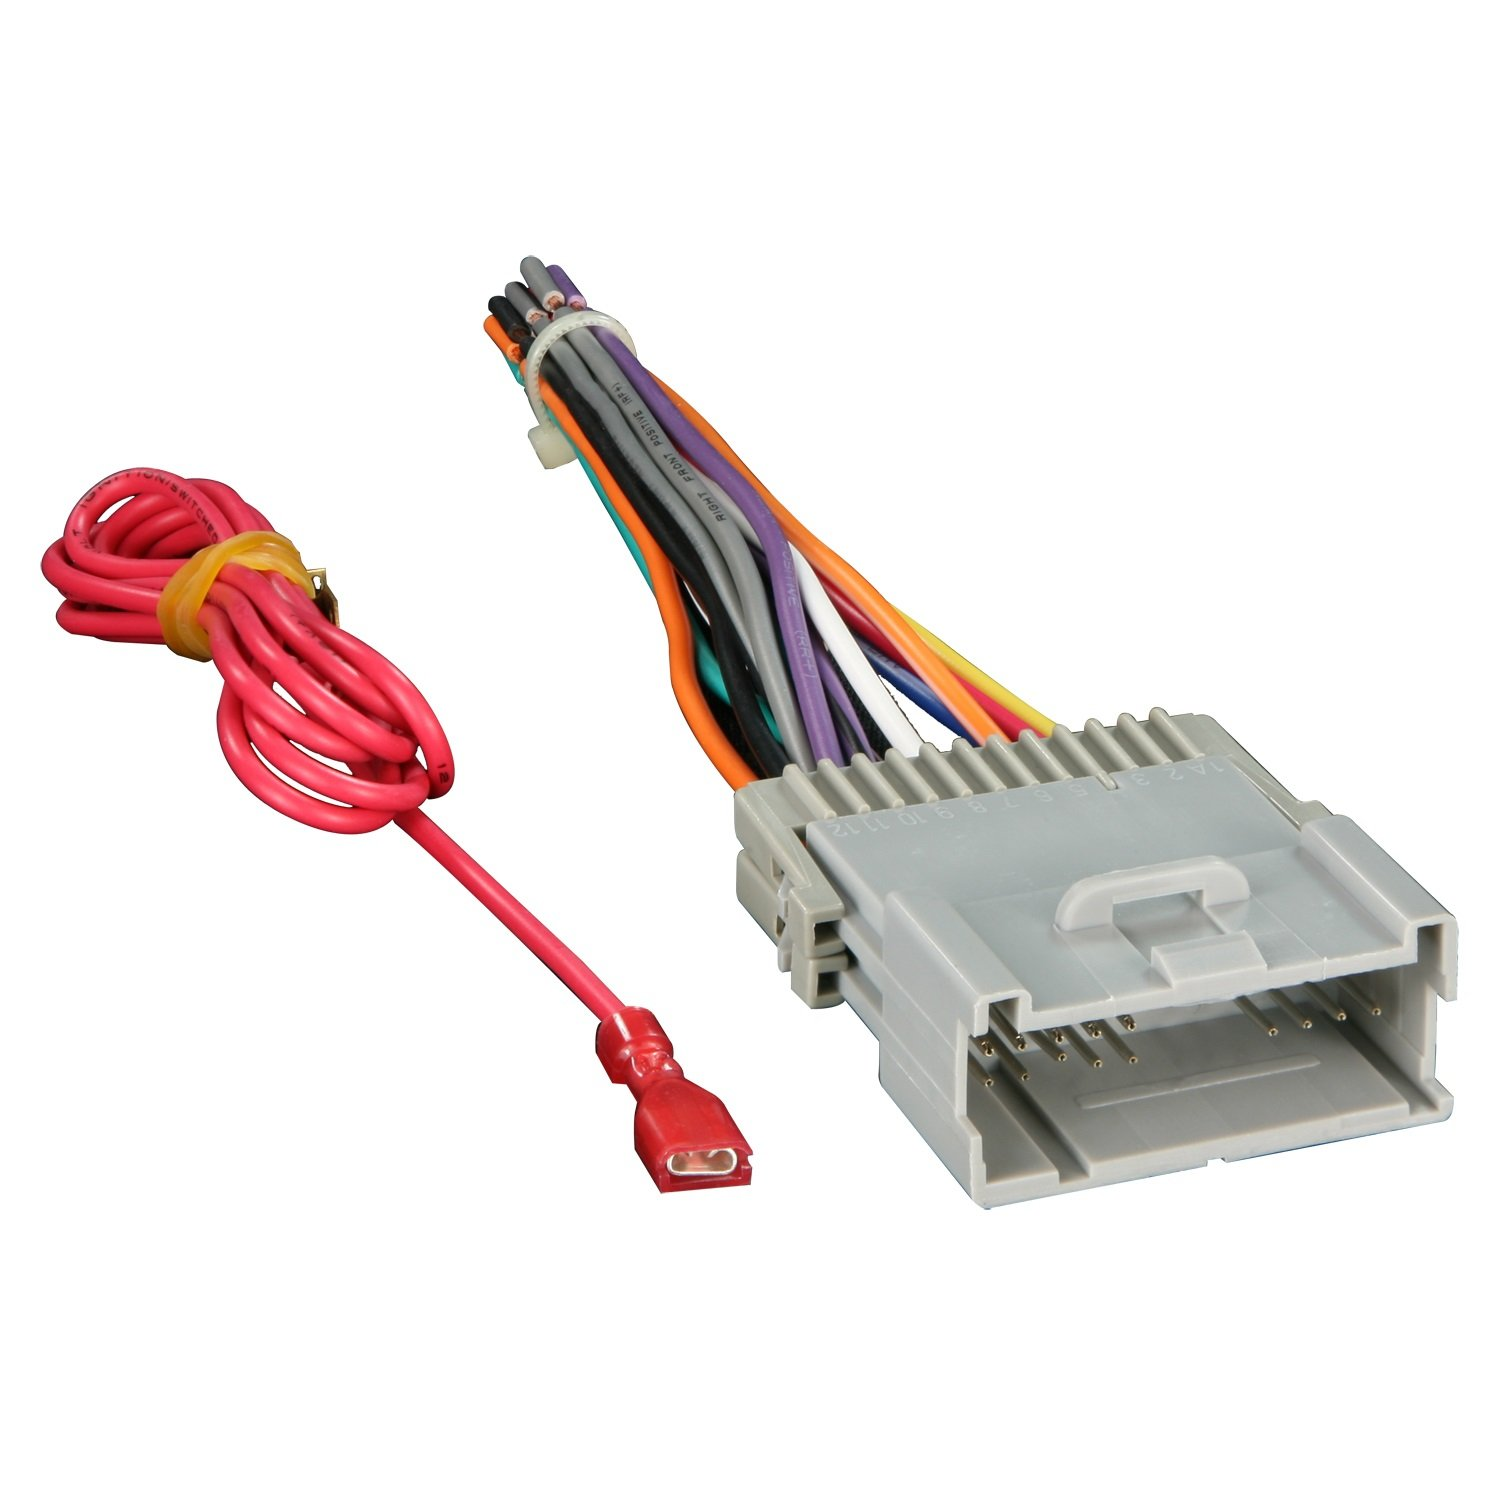 61eewxp9orL._SL1500_ amazon com metra 70 2003 radio wiring harness for gm 98 08  at mr168.co